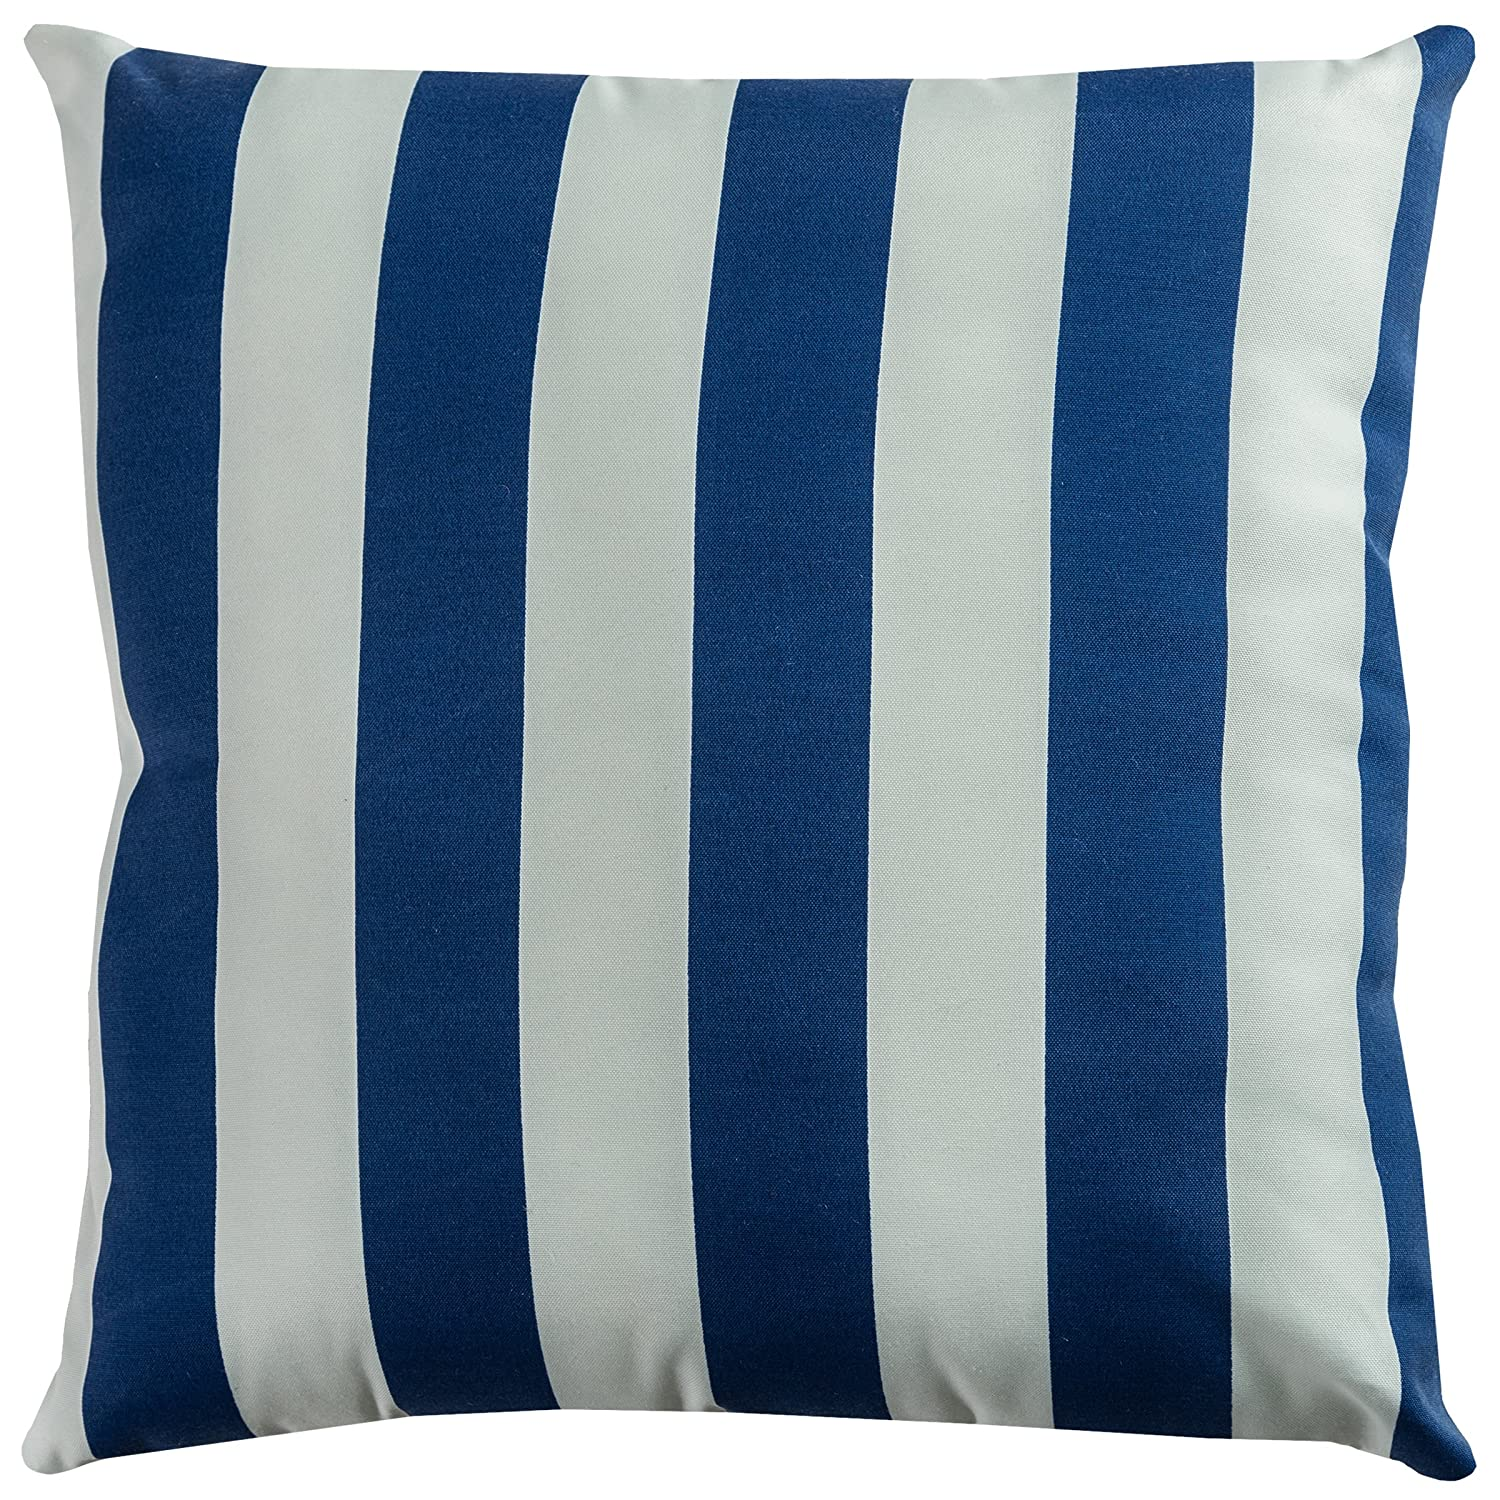 White Rizzy Home TFV045 Decorative Poly Filled Throw Pillow 22 x 22 Navy